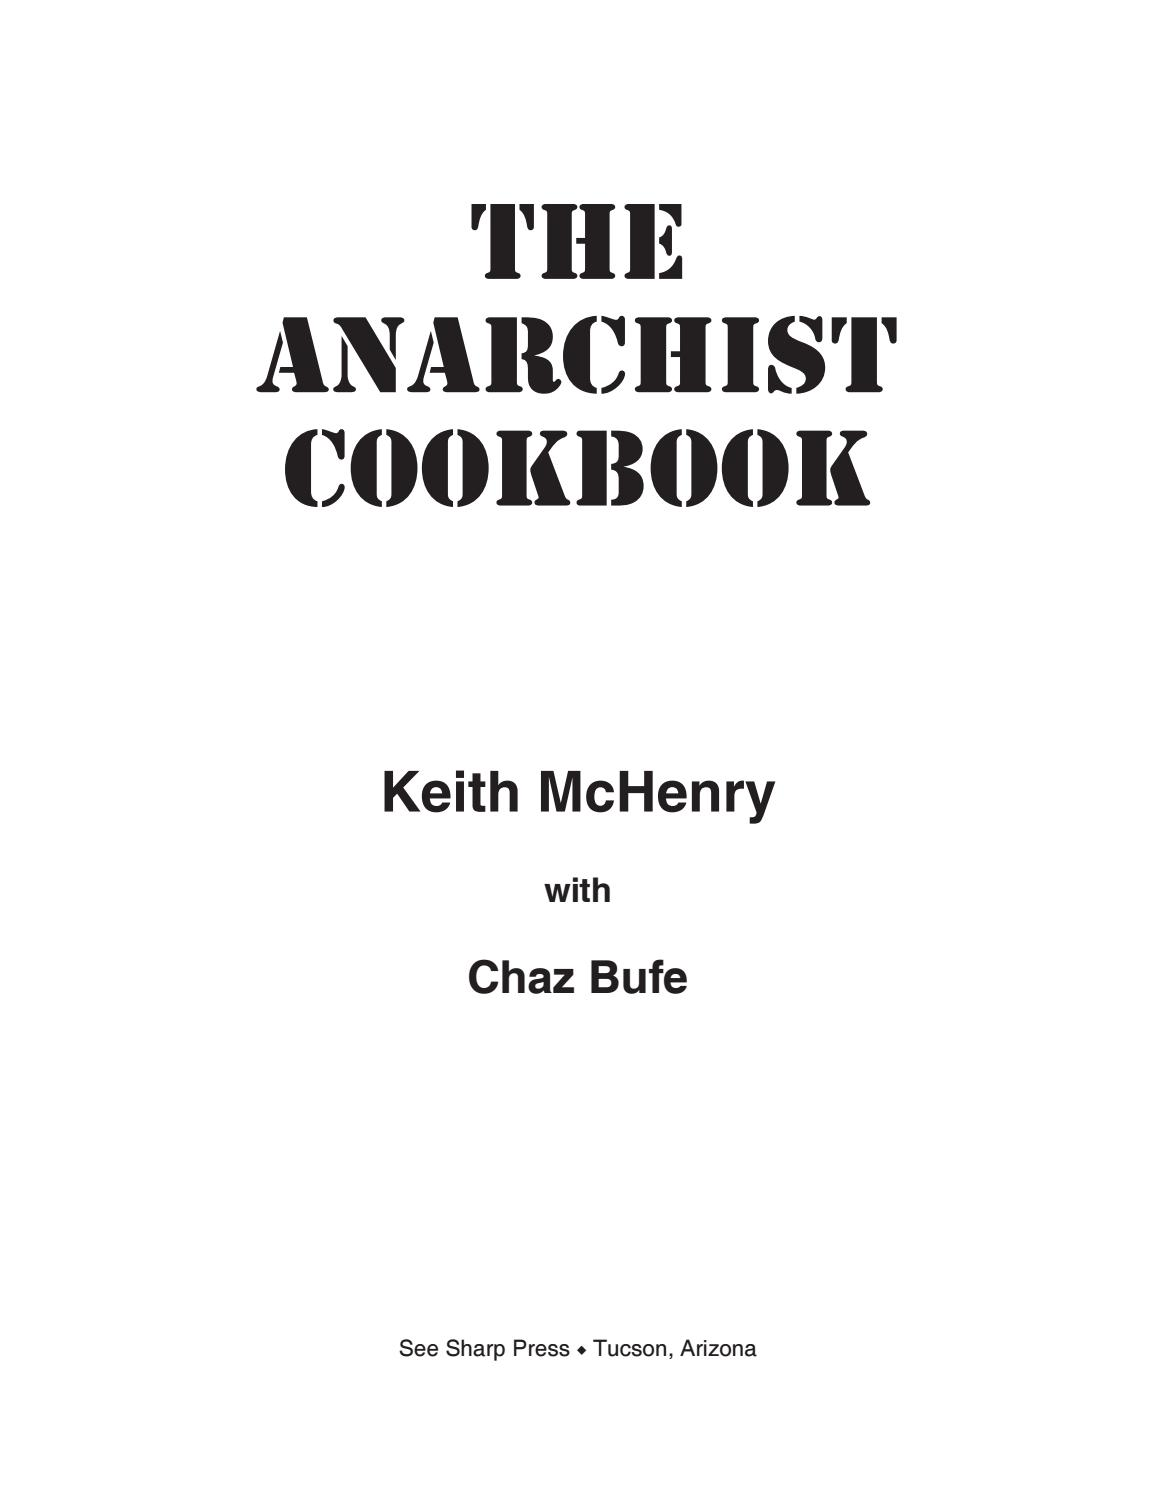 The Corrected And Updated Anarchist Cookbook Pdf